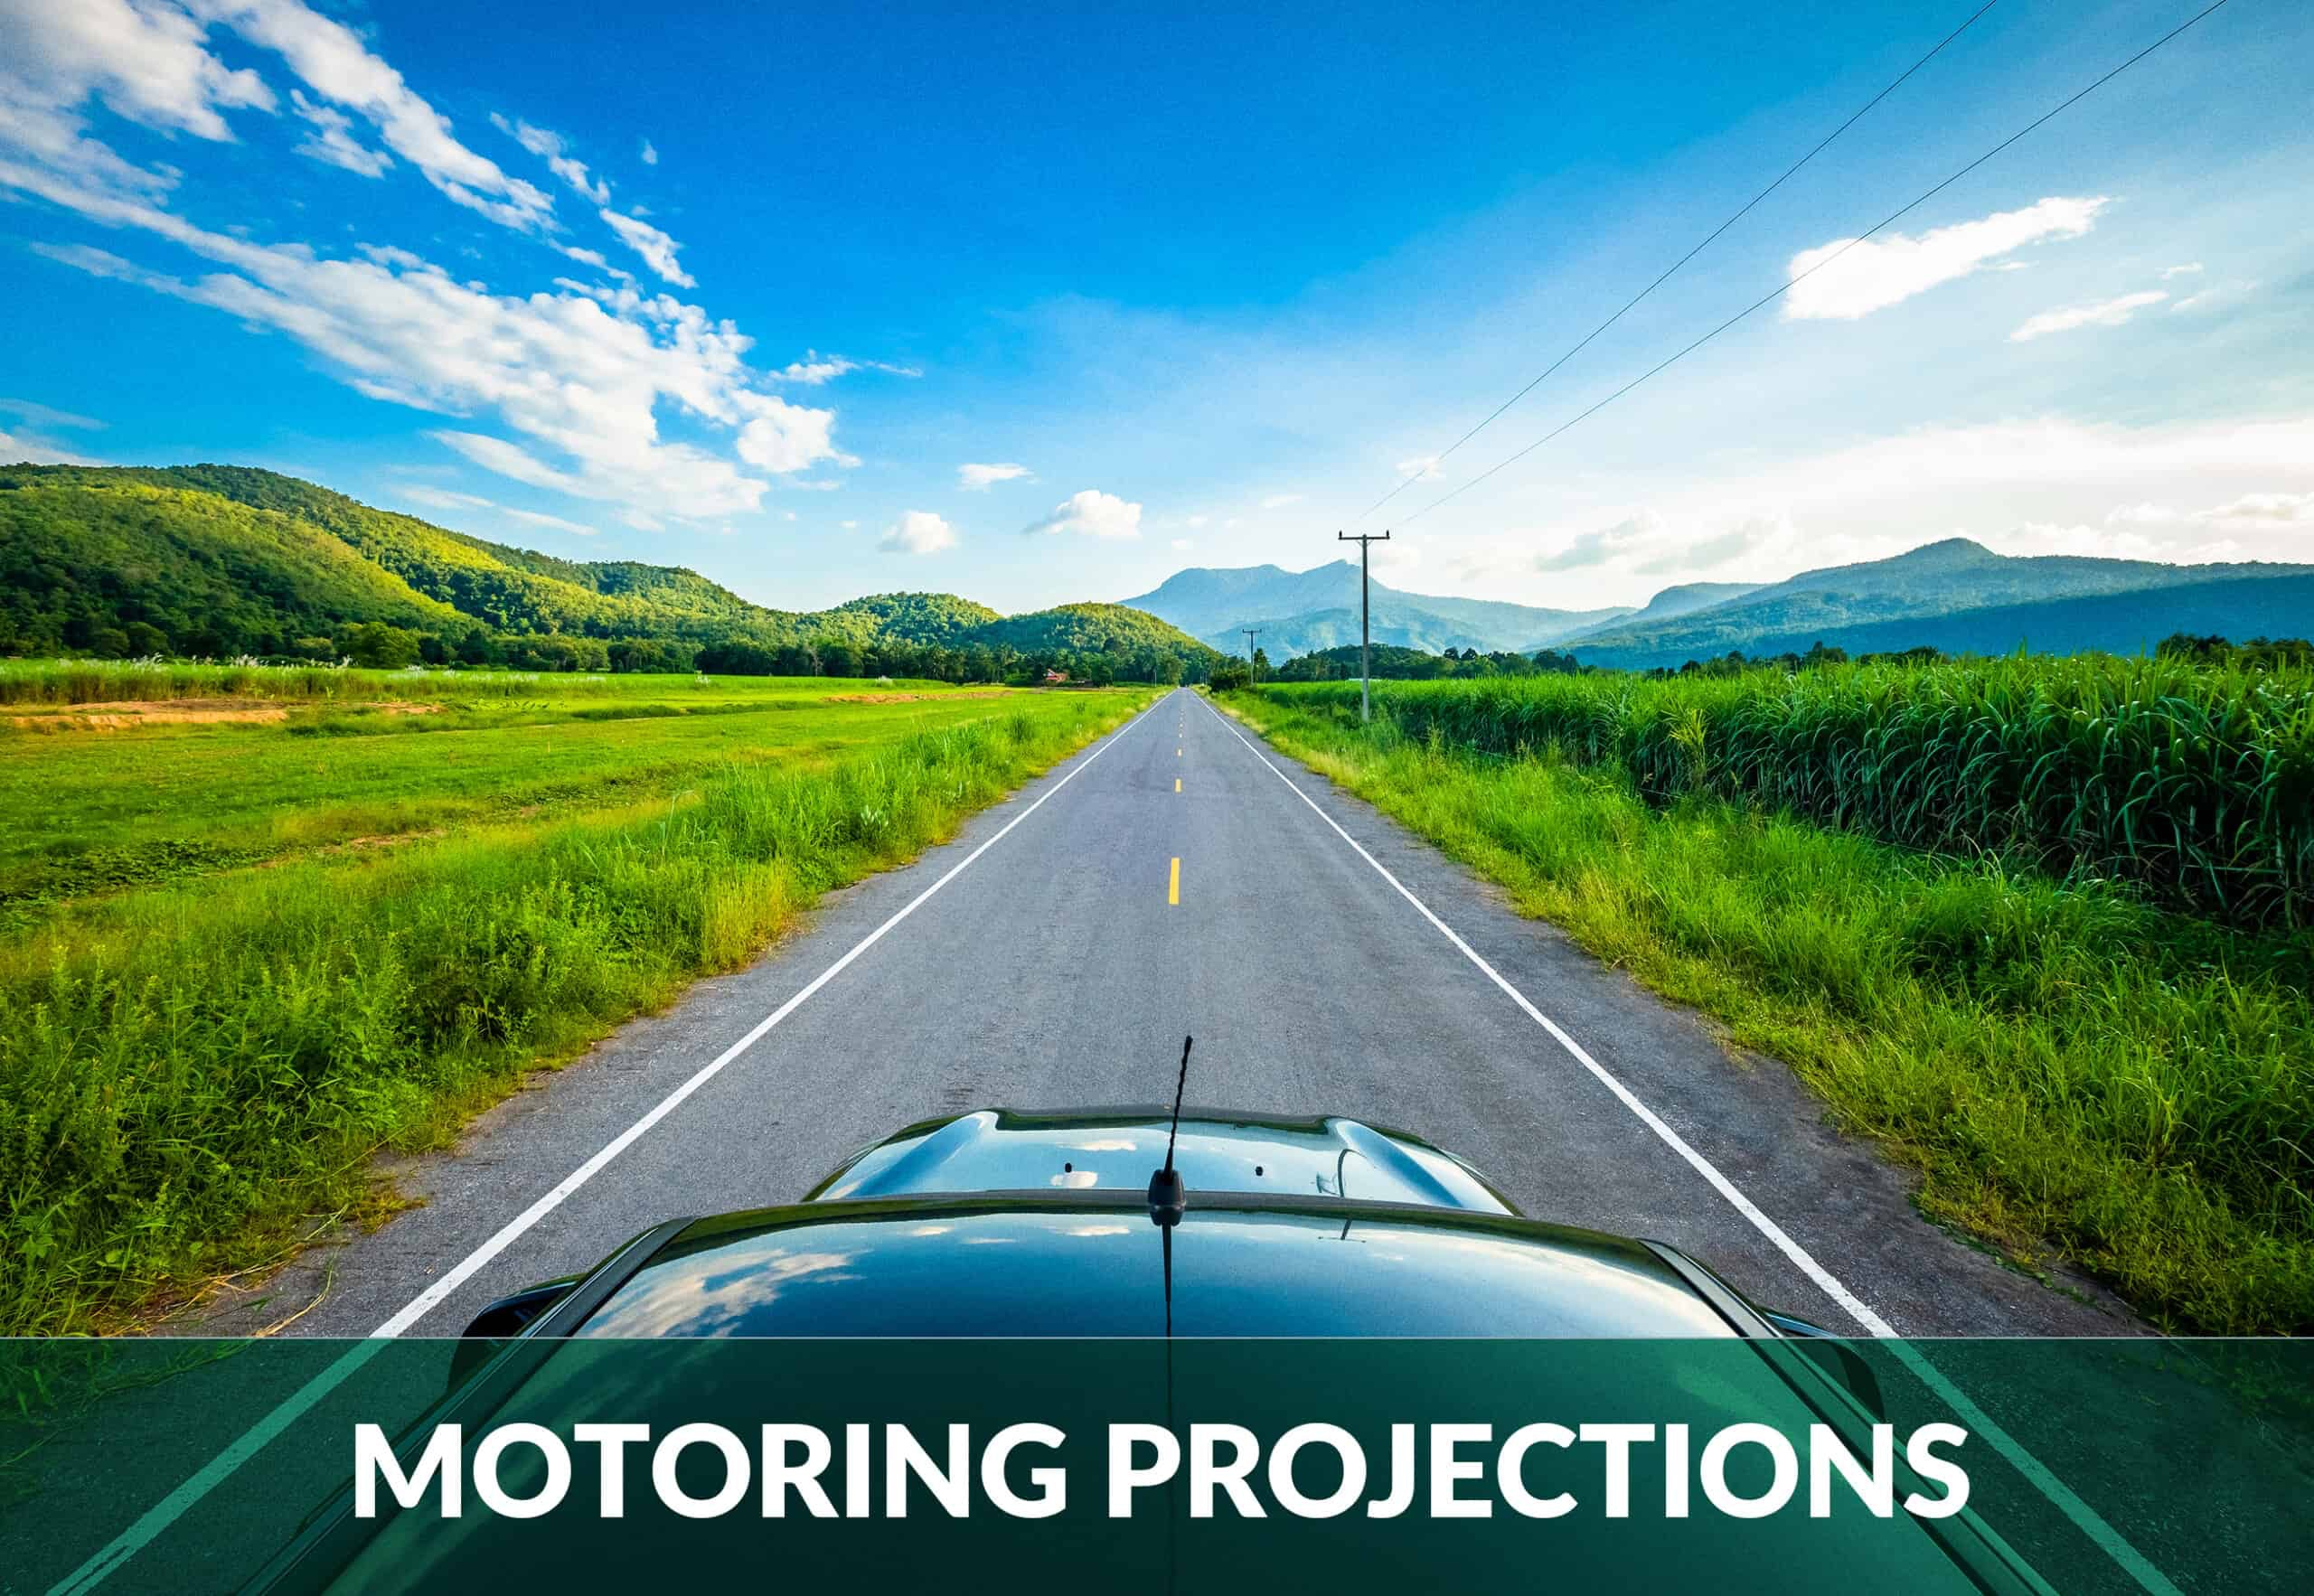 Motoring projections